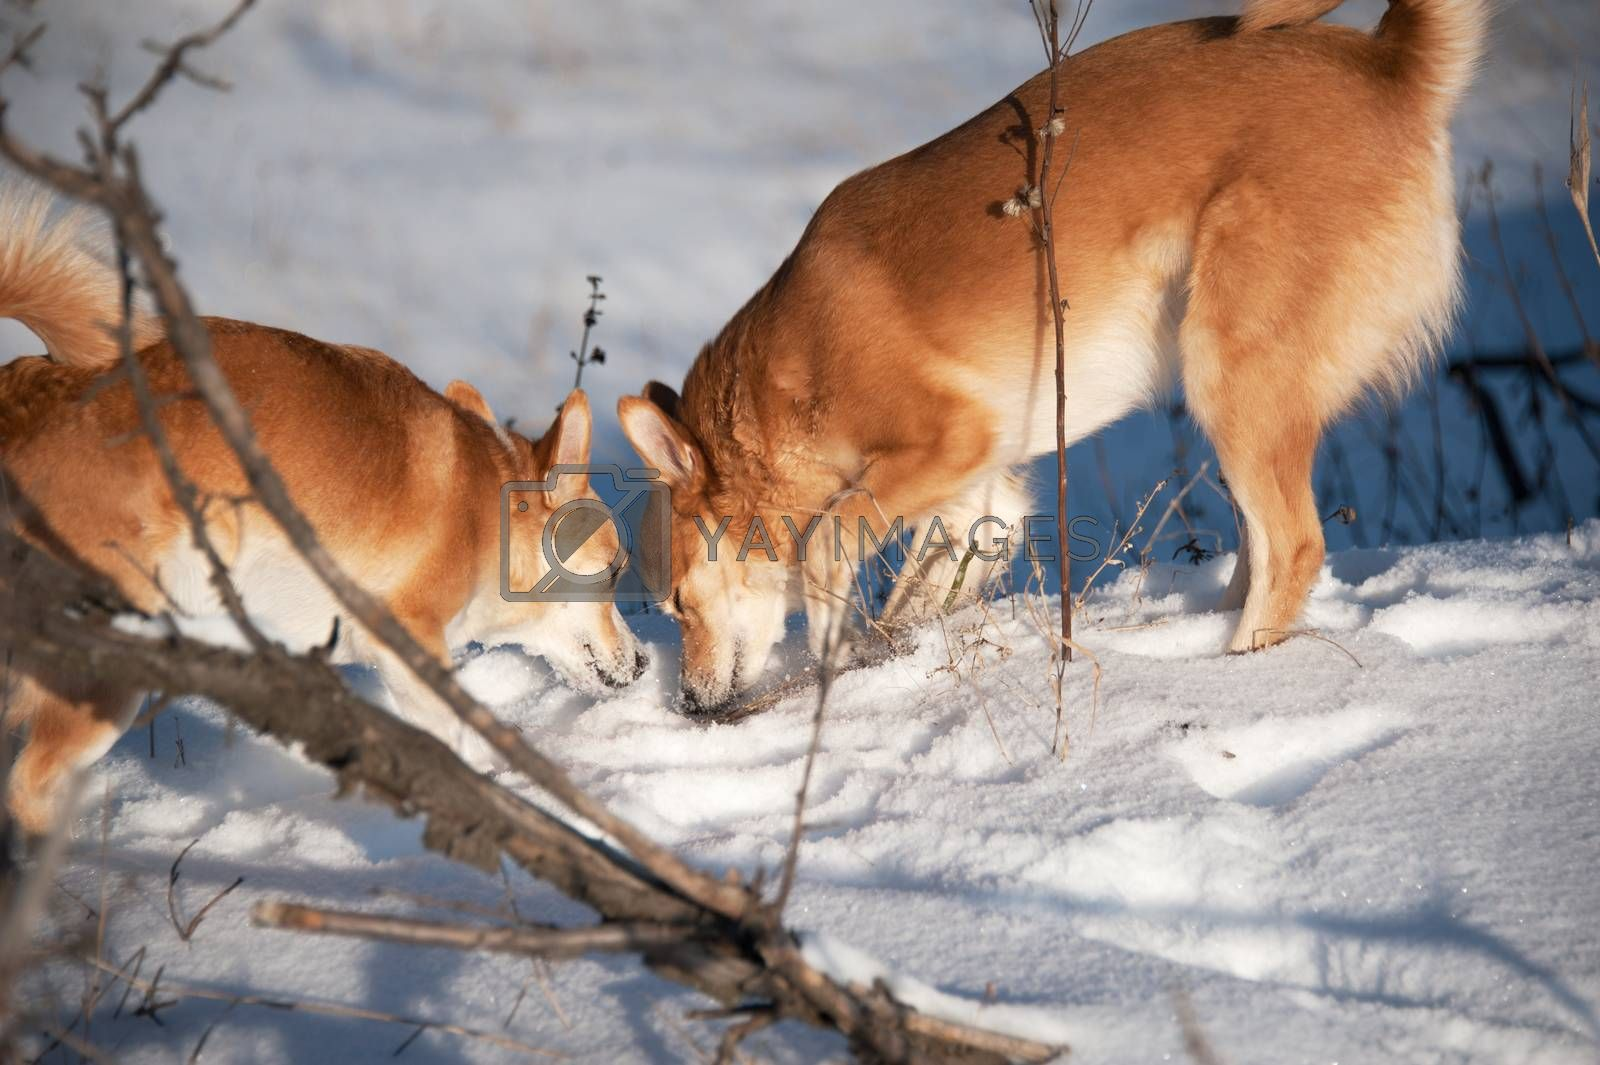 Dogs digging snow. by bashta